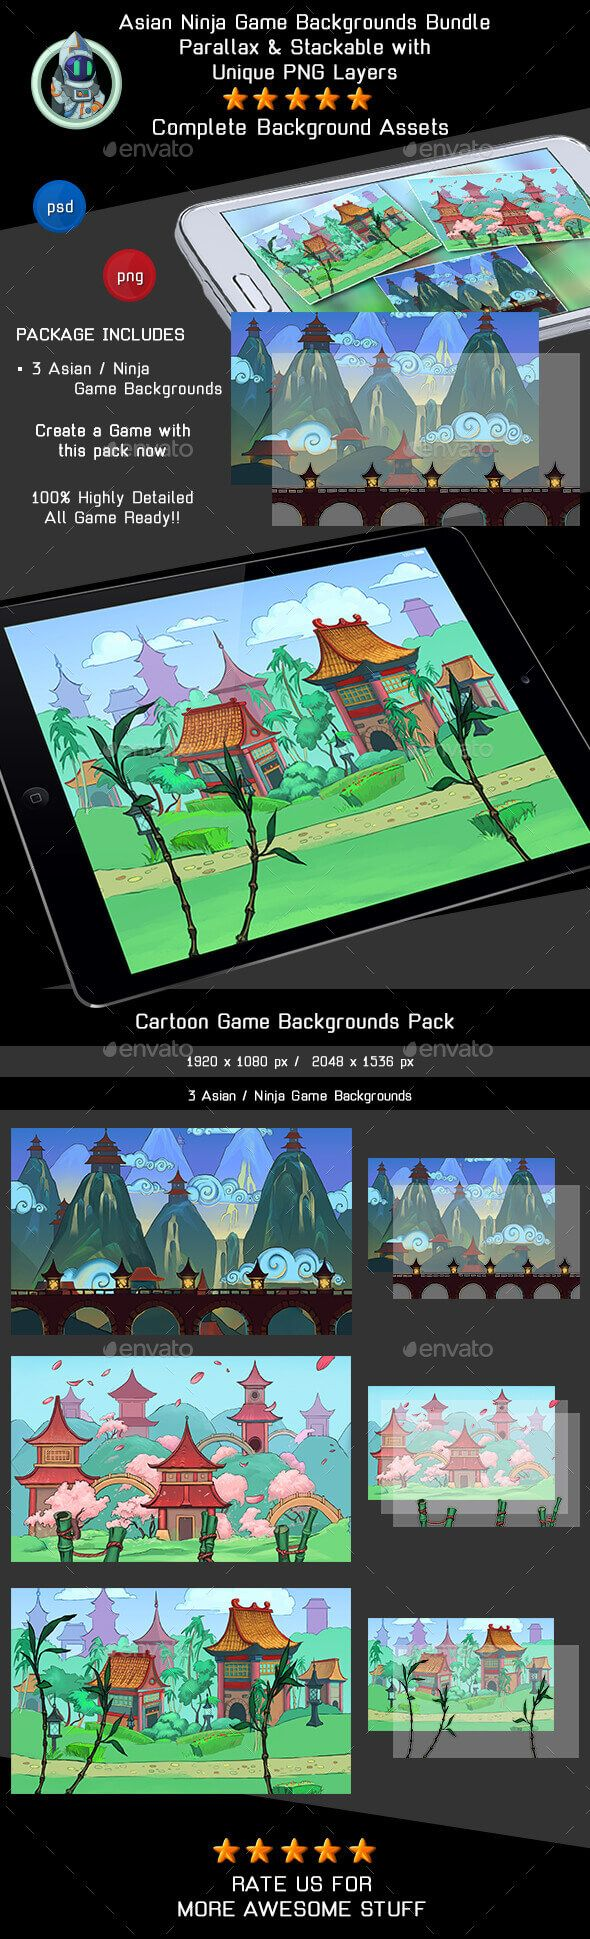 3 Asian / Ninja Game Backgrounds - Parallax and Tileable - Backgrounds Game Assets